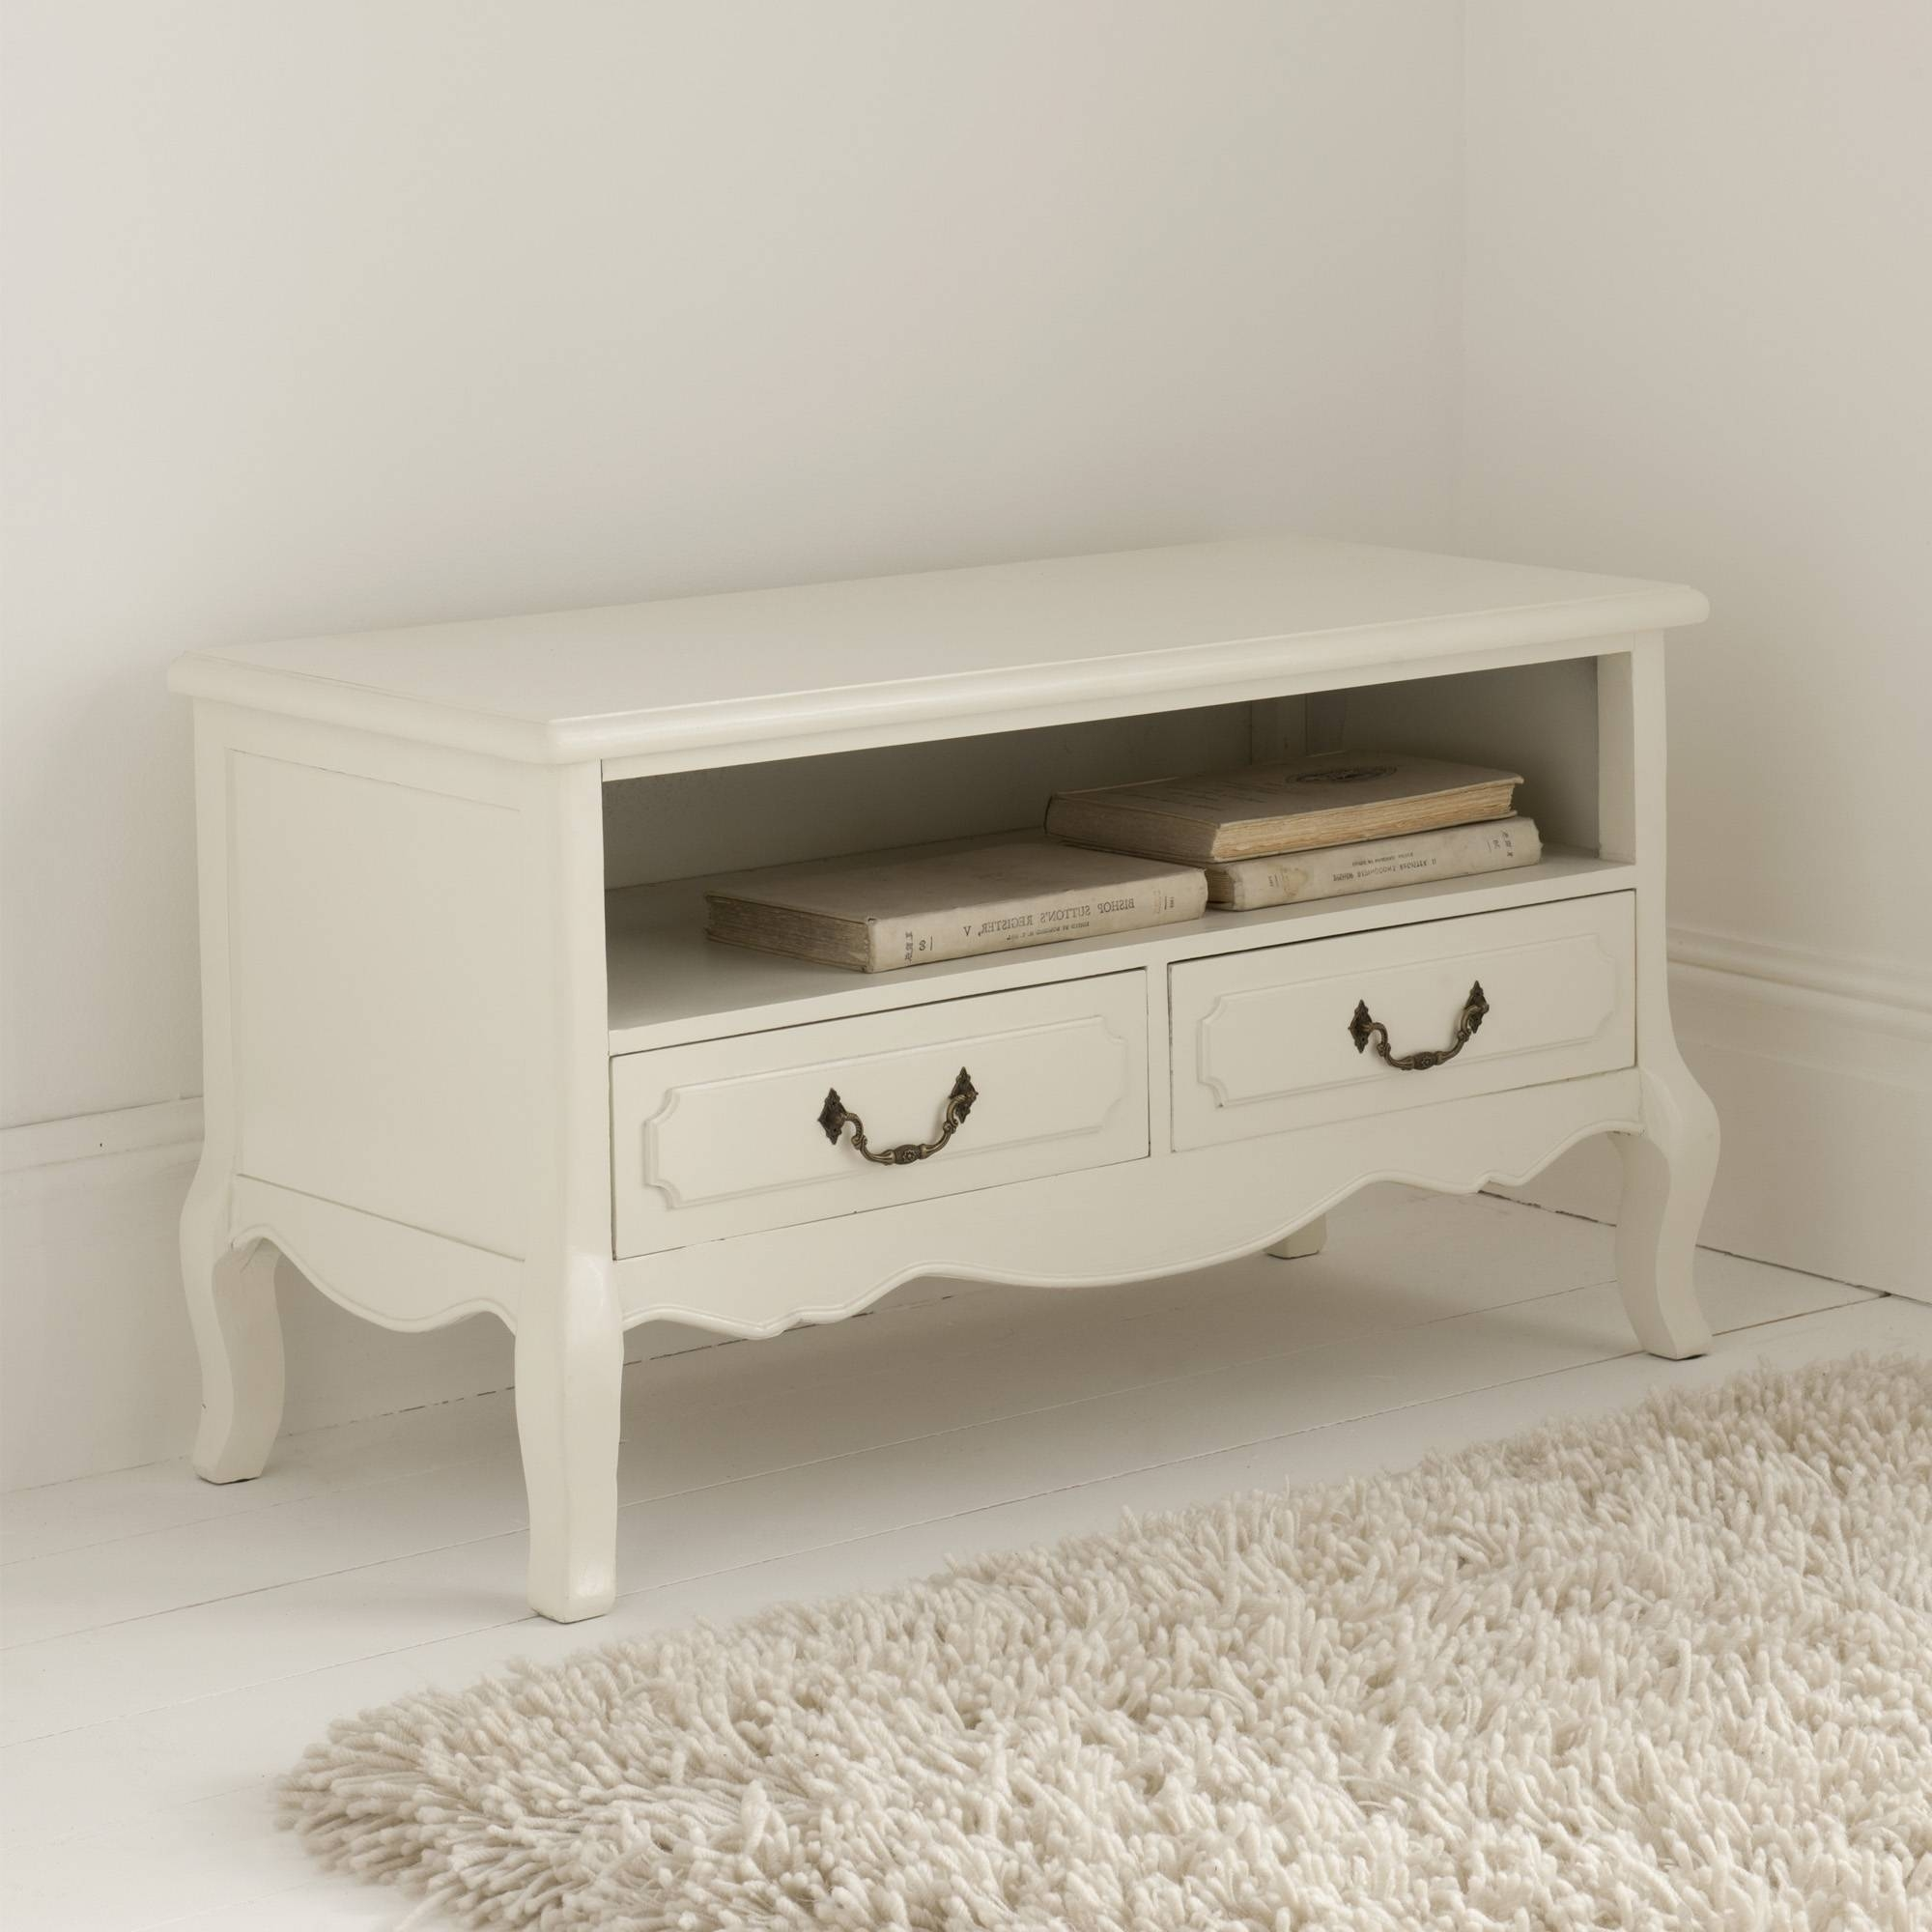 Antique French Tv Stand | Antique White Furniture Range in Antique Style Tv Stands (Image 2 of 15)